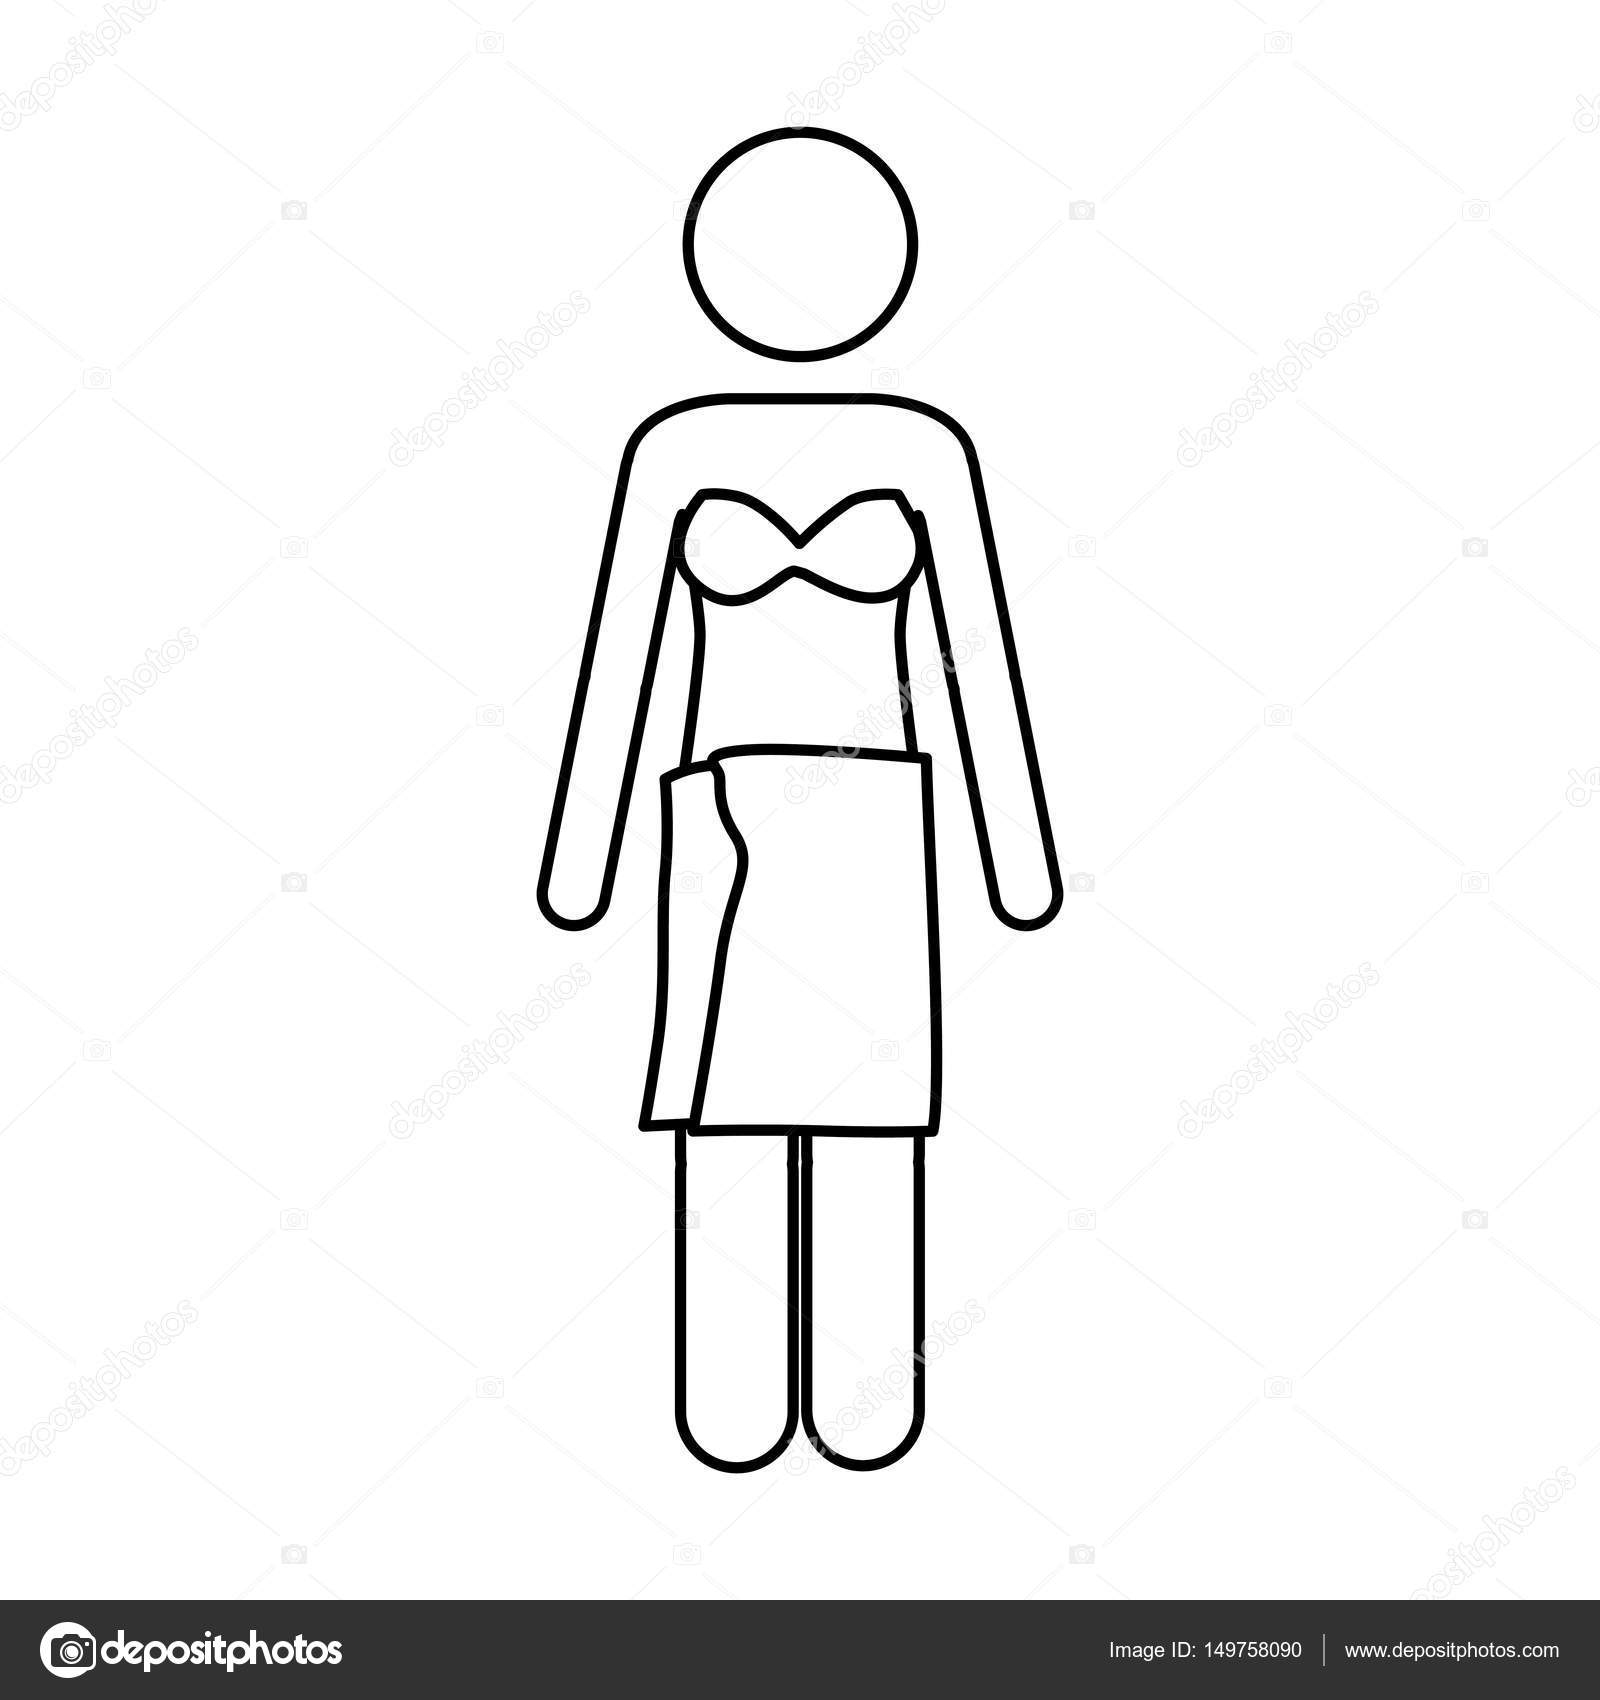 Monochrome Contour Pictogram Of Woman In Bikini With Towel